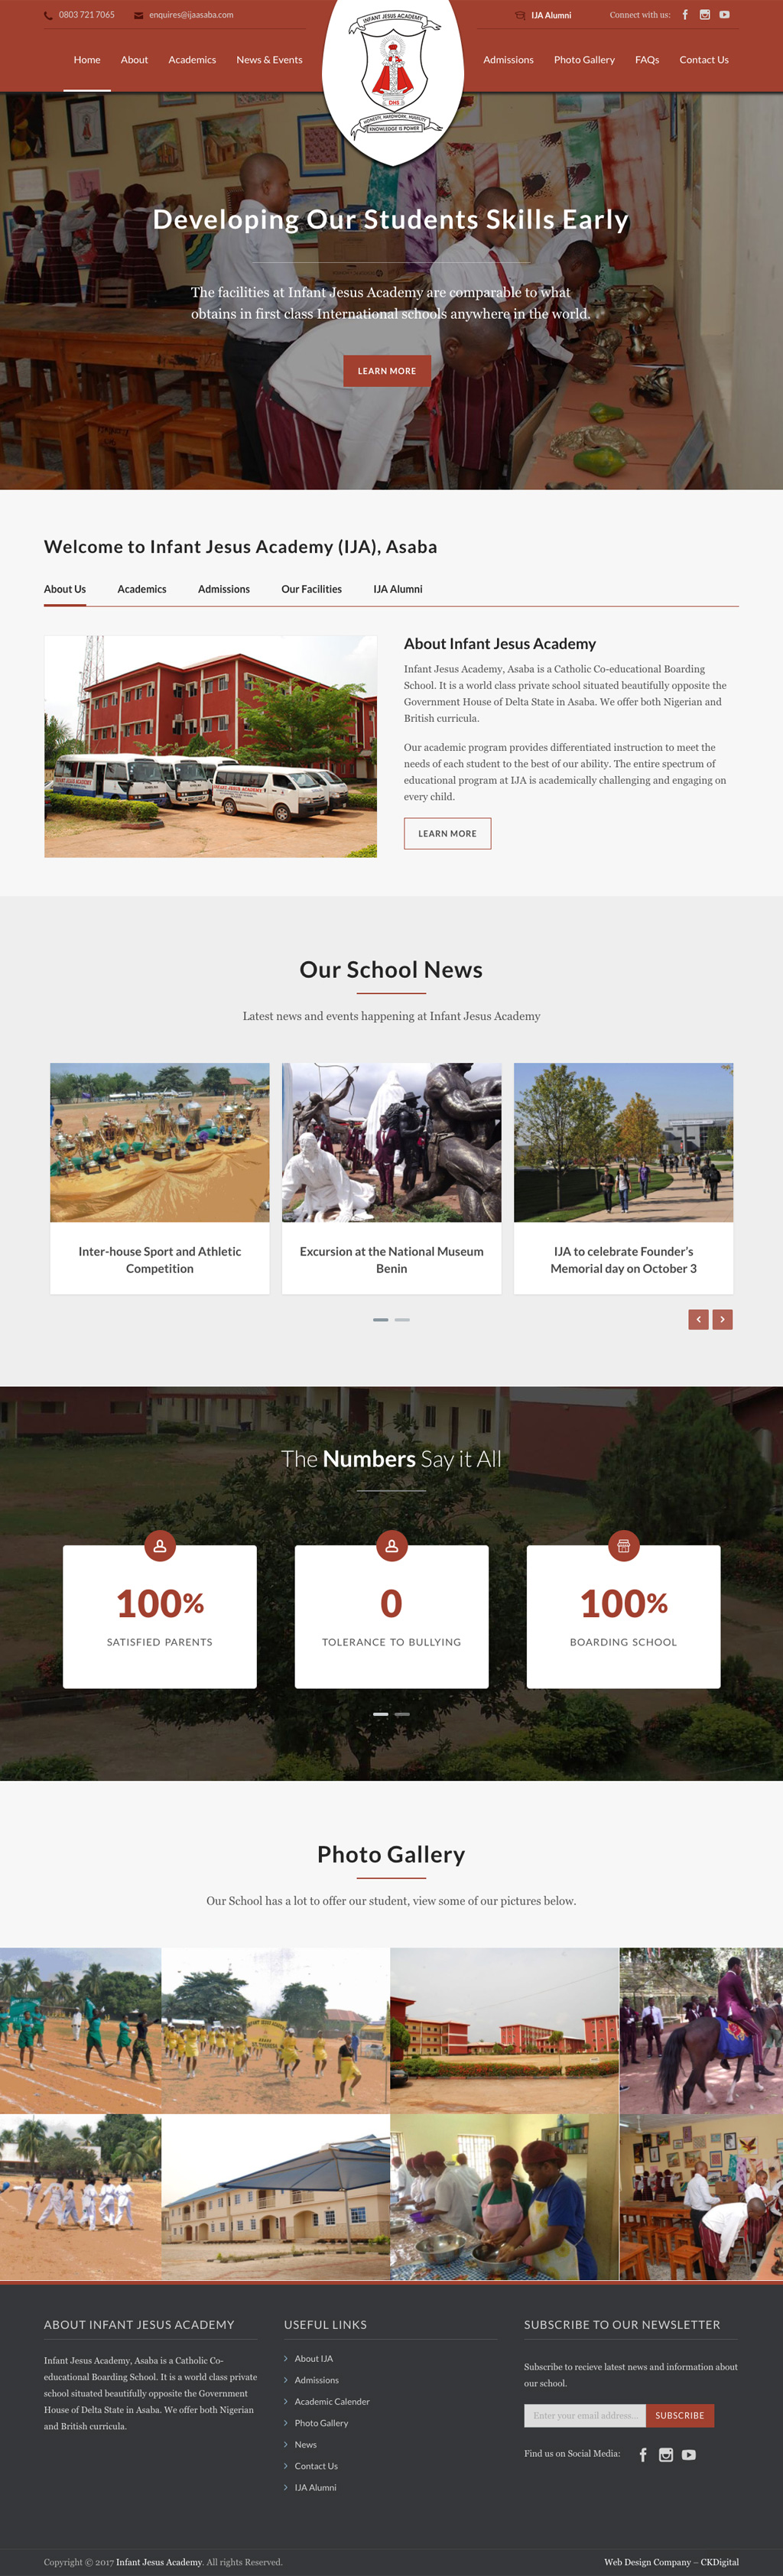 Website Design for Secondary School - Infant Jesus Academy